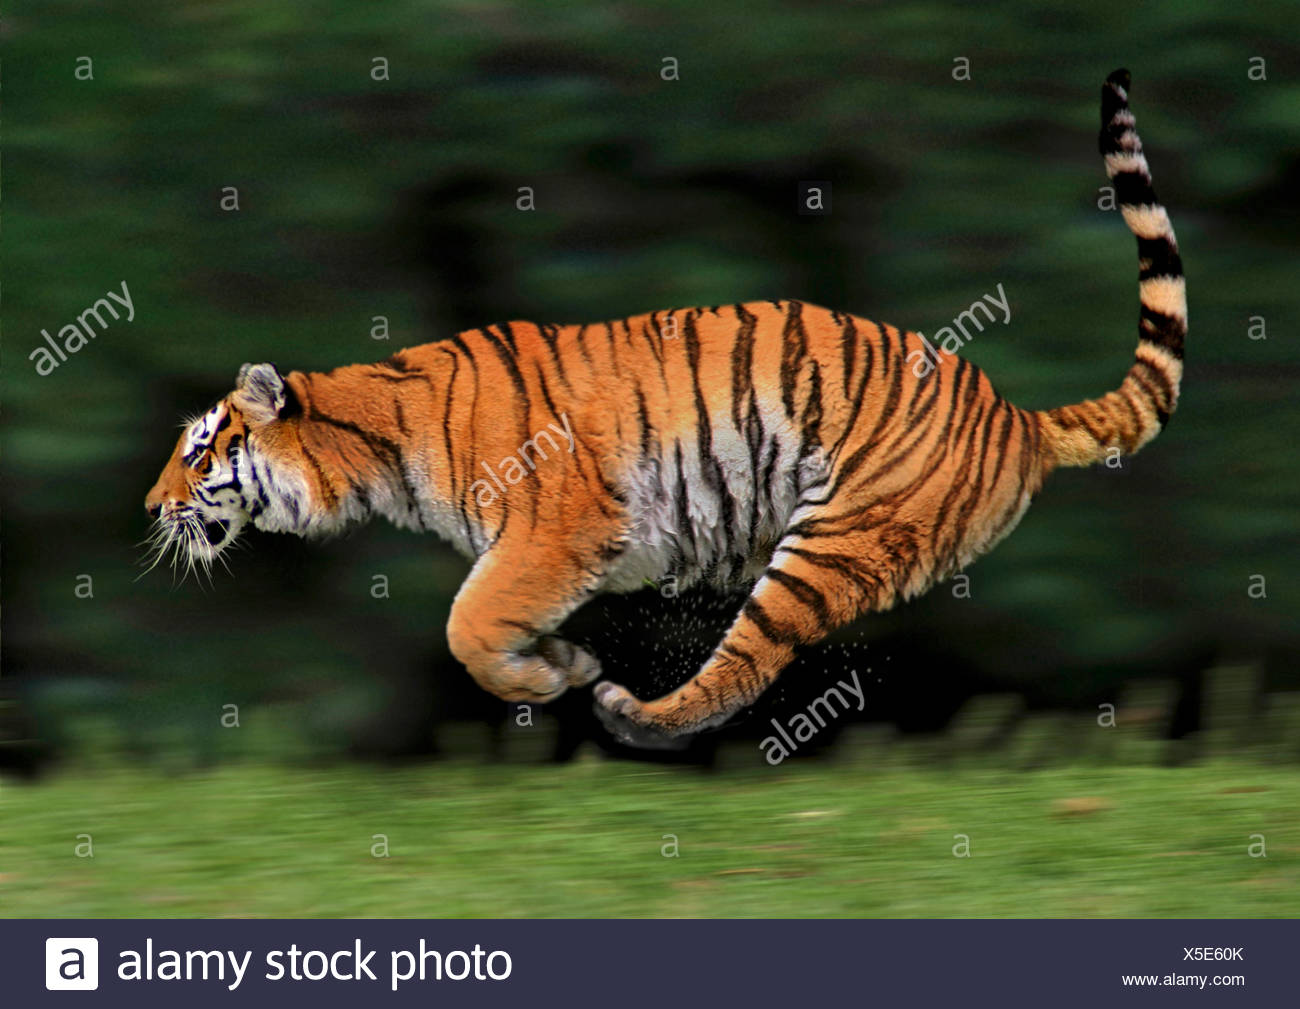 tiger (Panthera tigris), lateral running, action Stock Photo